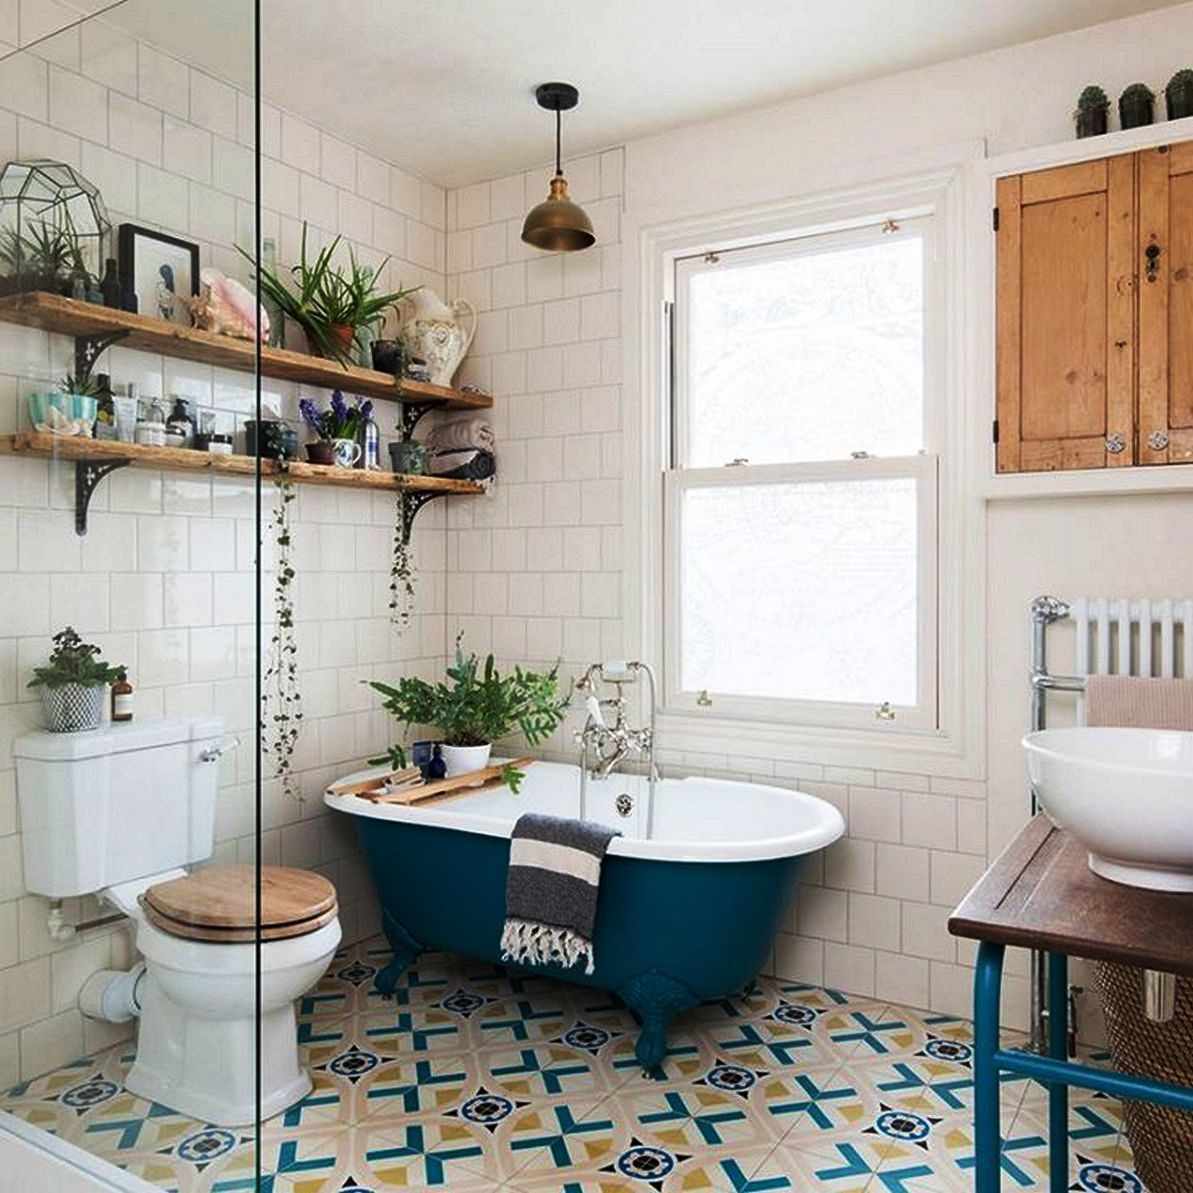 Bathroom trends 2021 the perfect new look for your bathroom remodeling 9